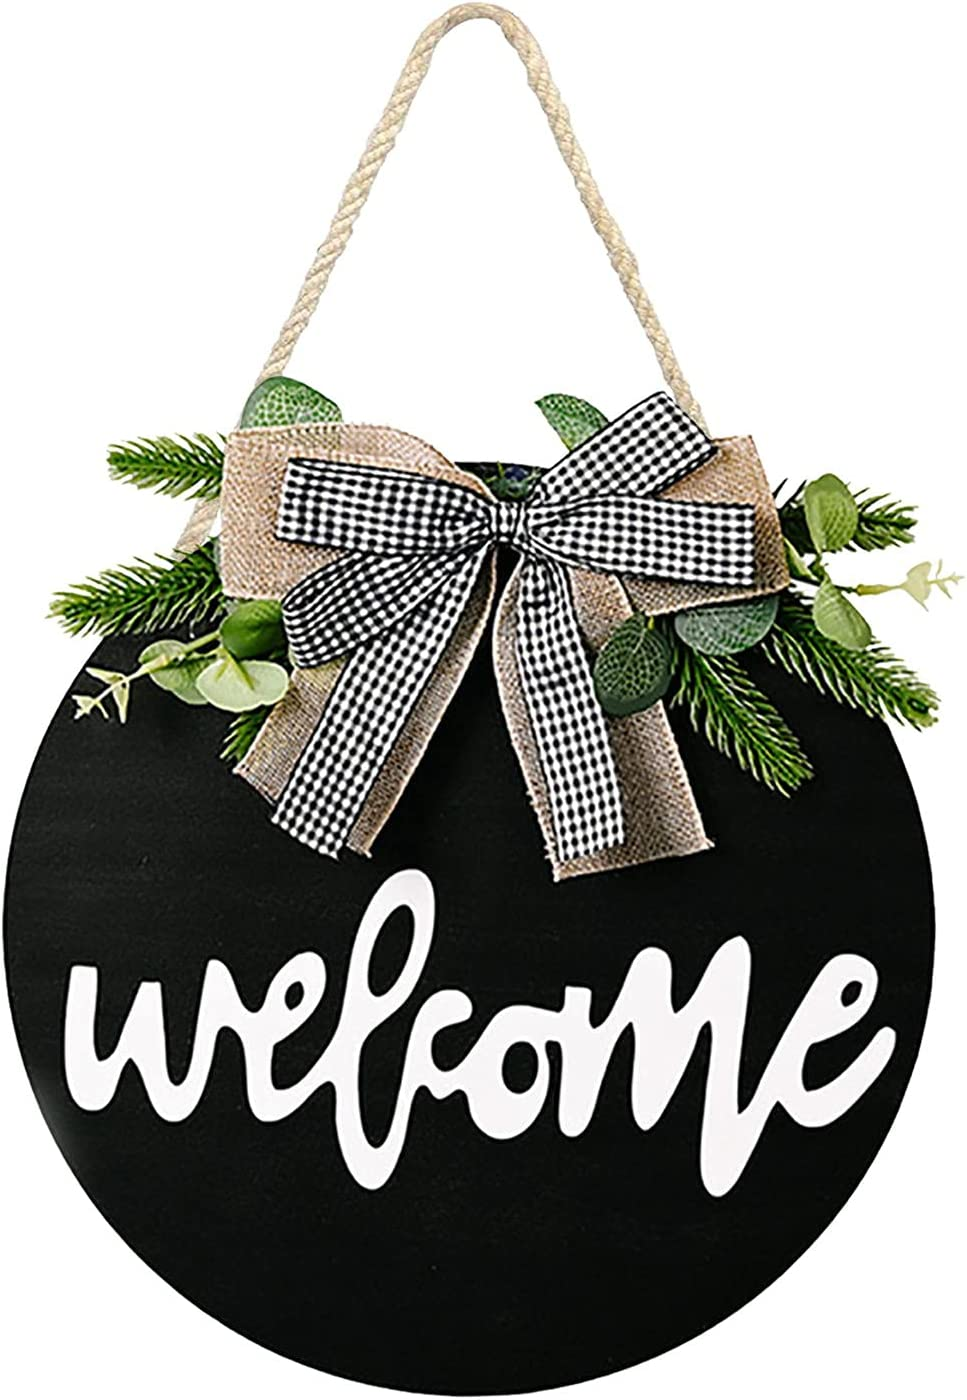 Welcome Home Sign Hanger Wreath Front Door Decor - Front Door Decor, Rustic Round Wreath for Housewarming Gift Farmhouse Home Wall Art Decor 12 Inches (Plaid Bow)